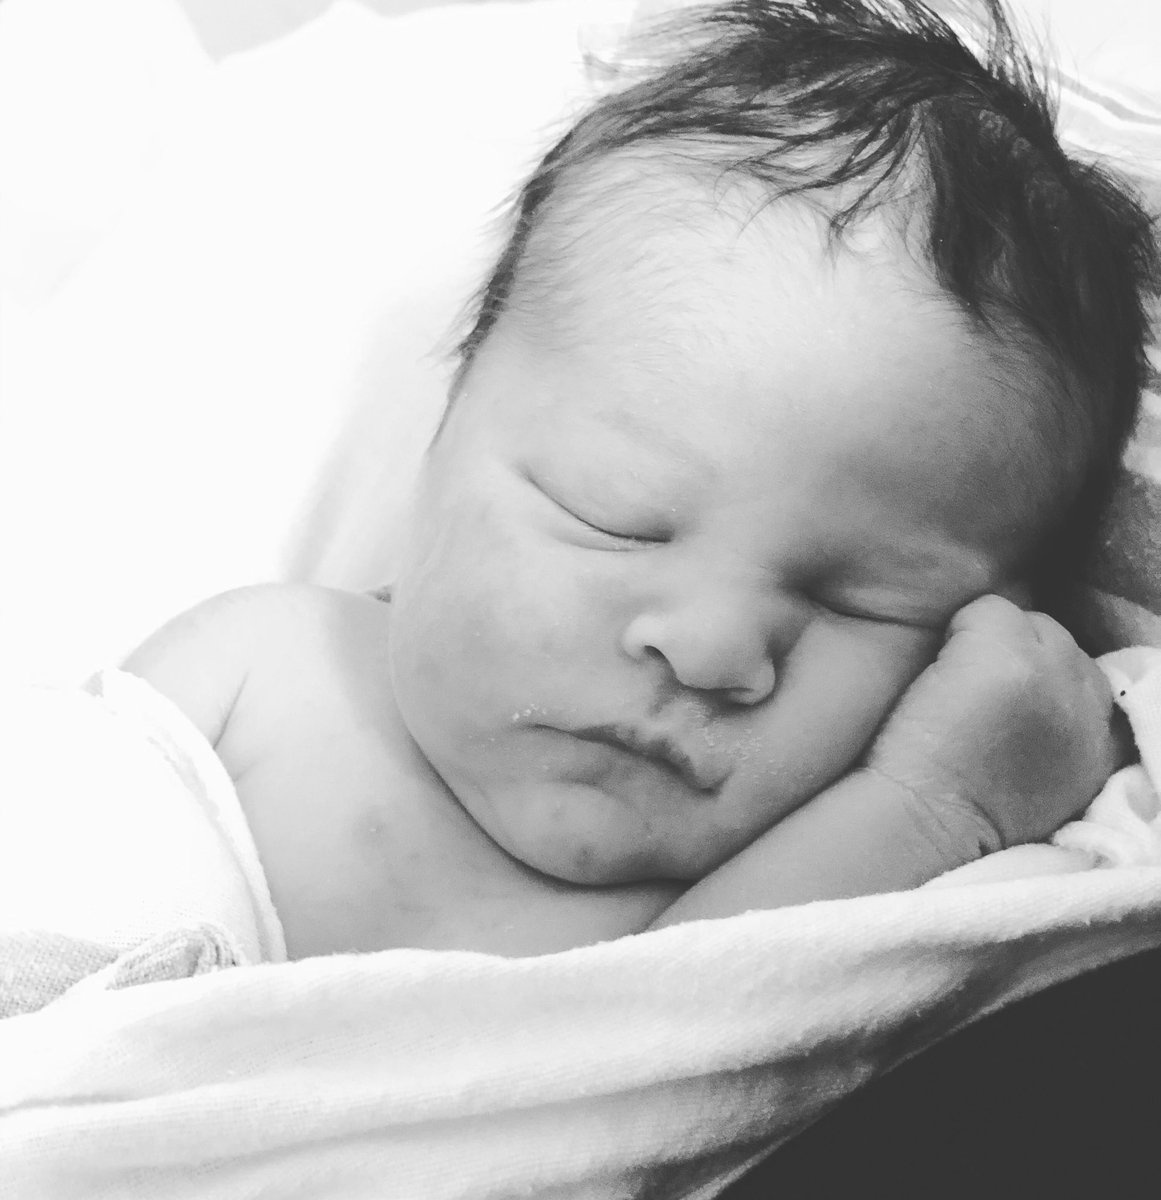 Had the most beautiful Valentine's Day ever this year. Introducing Axel Fumero. We are so in love ❤️💙❤️💙💗